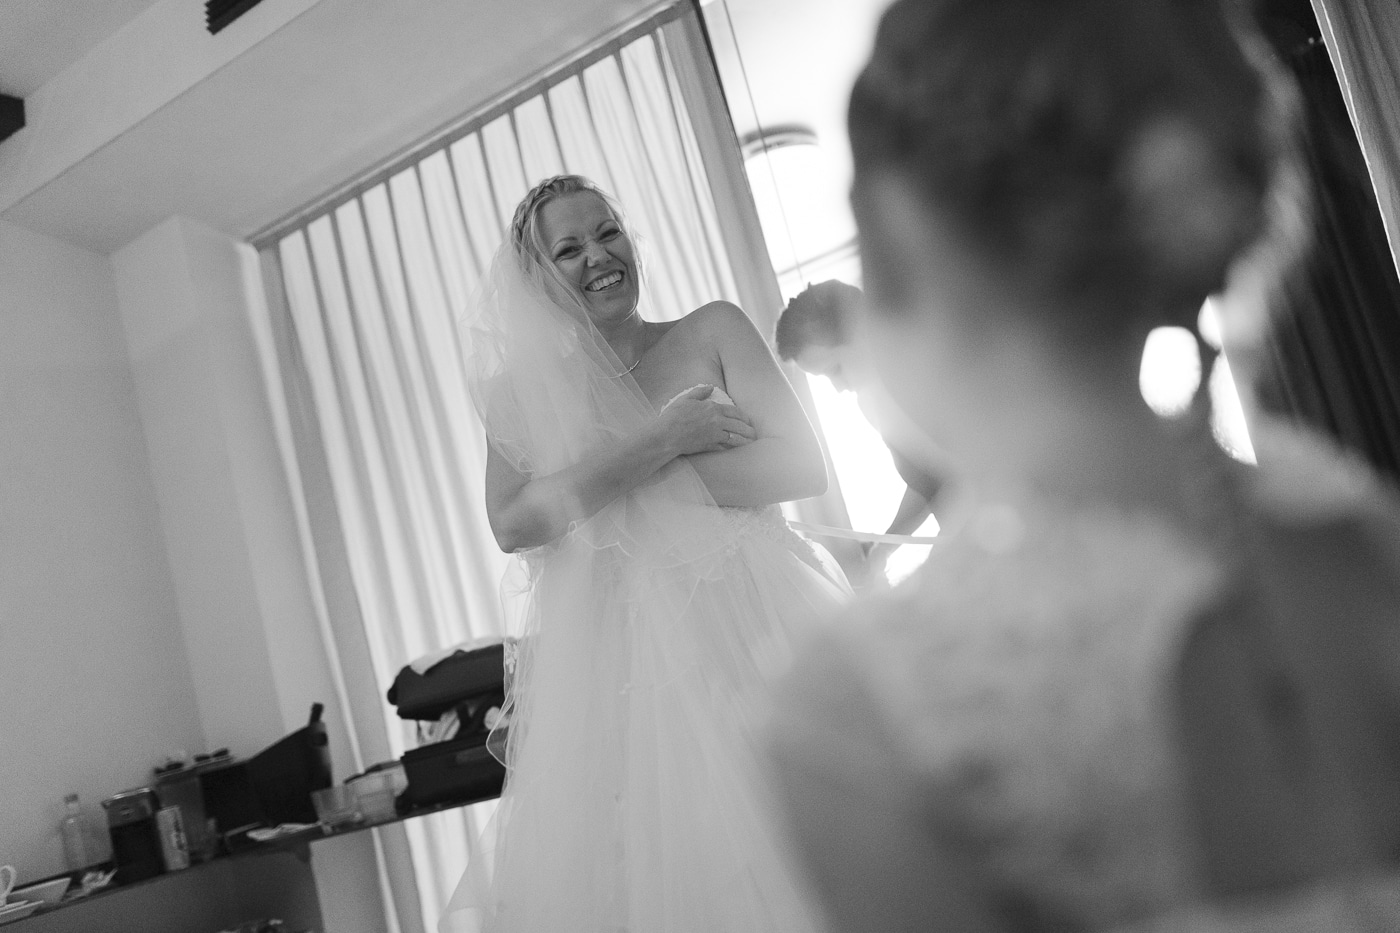 Bride in braided hair and veil holds dress up while being tied in